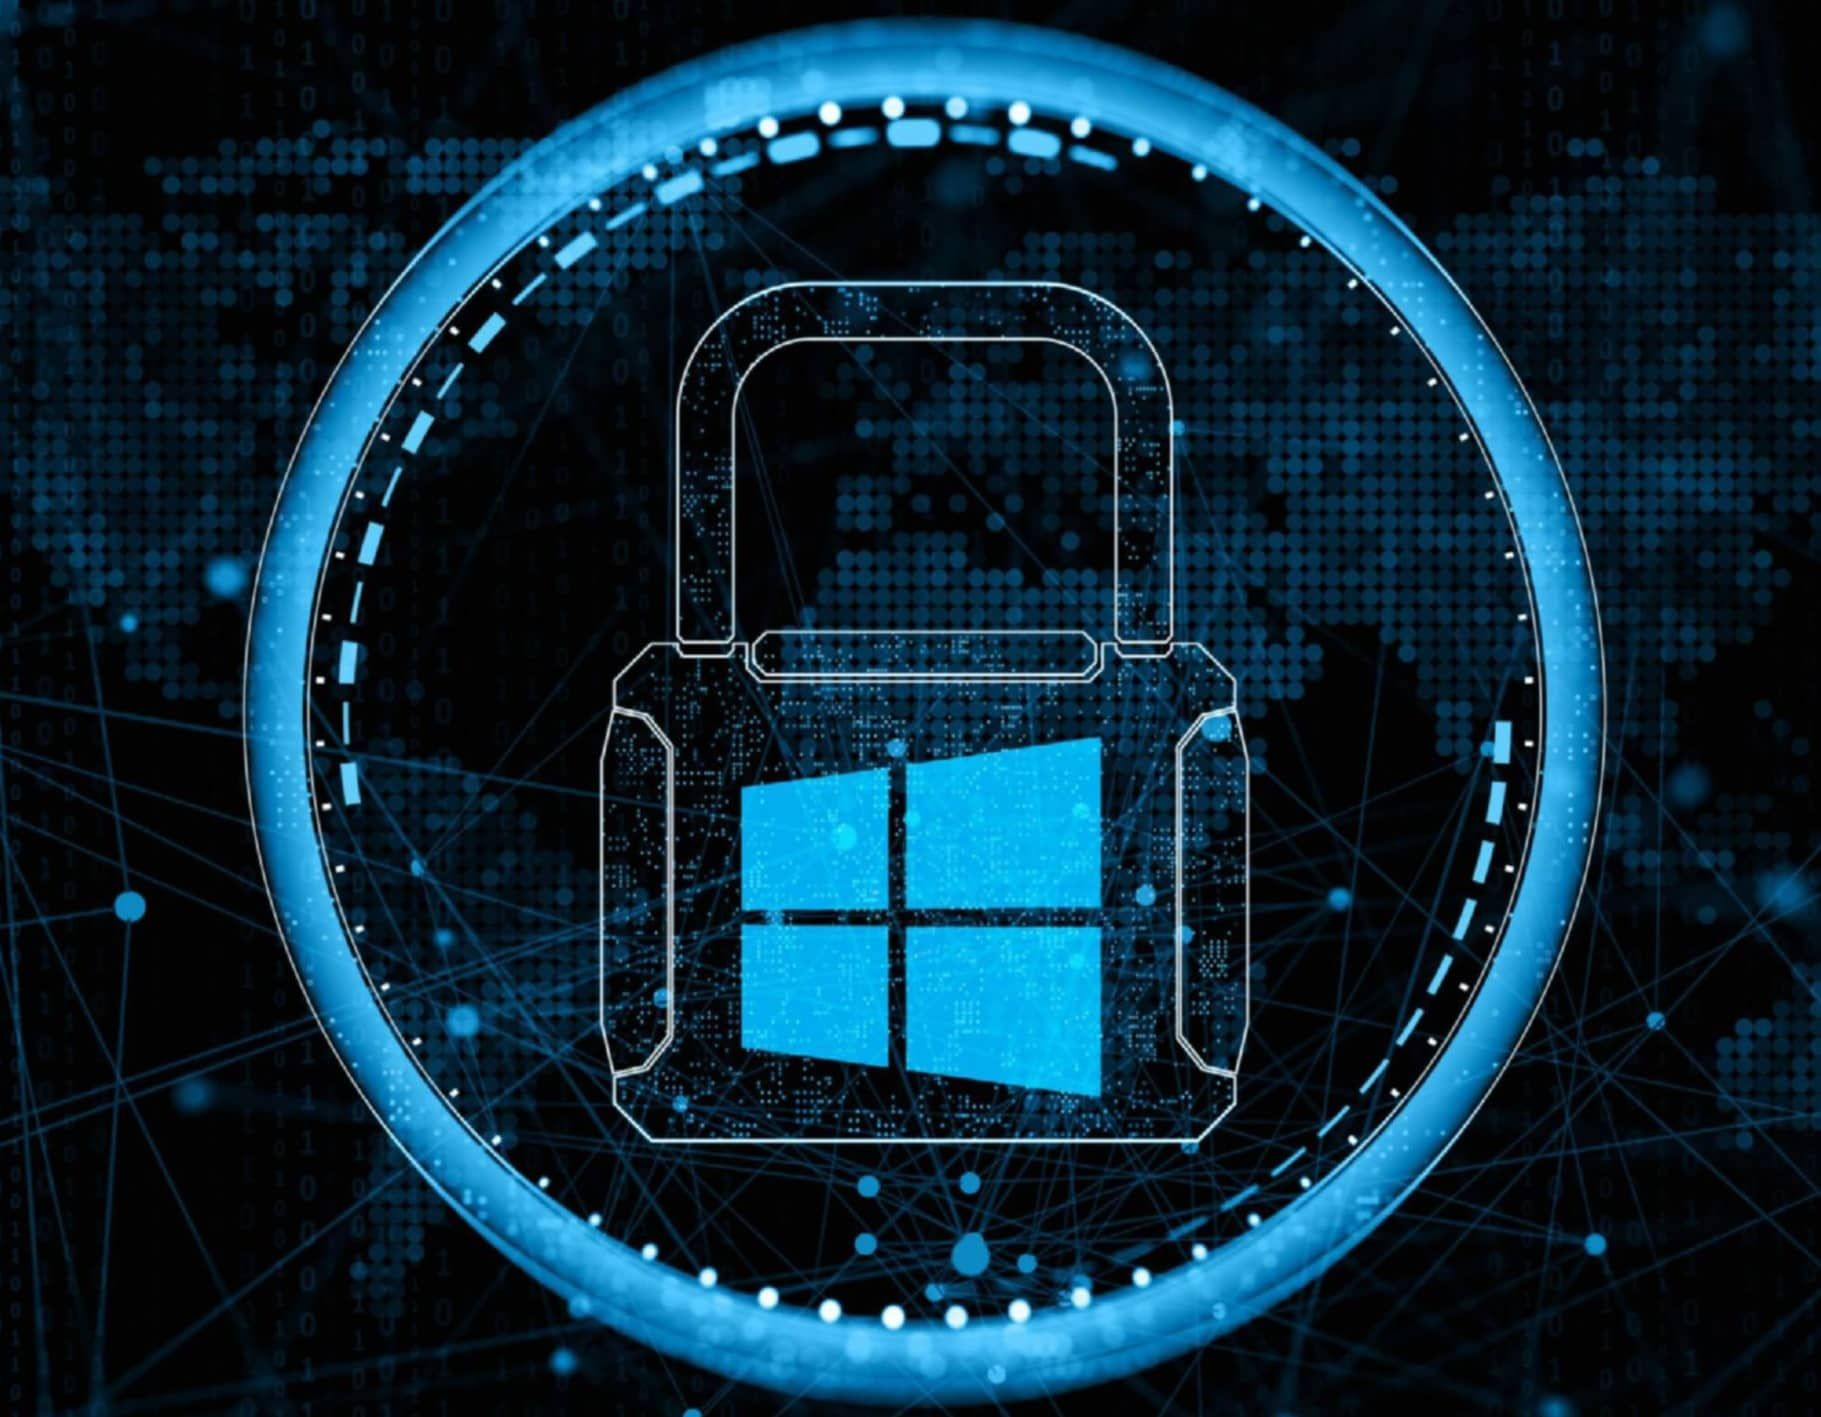 Windows 10 Microsoft Antivirus PC